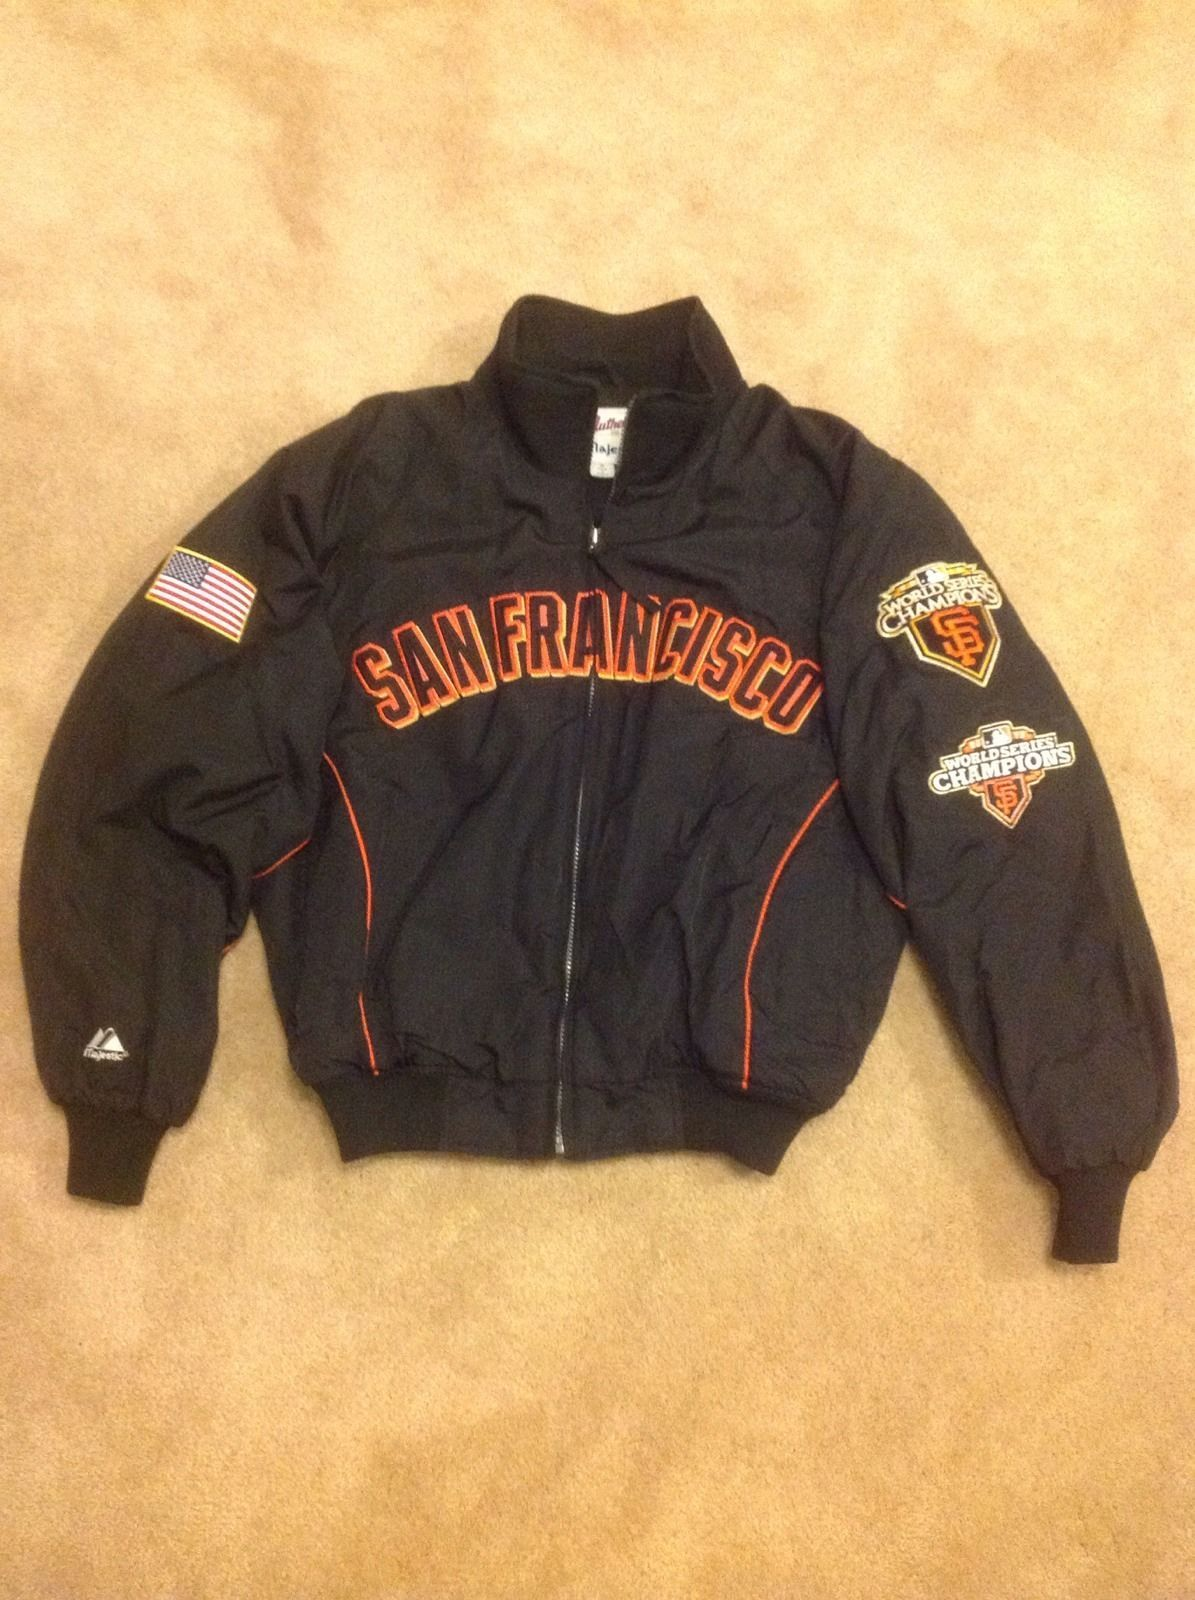 factory price eff69 8b058 San Francisco SF Giants Majestic Jacket Small Rare Hard to ...